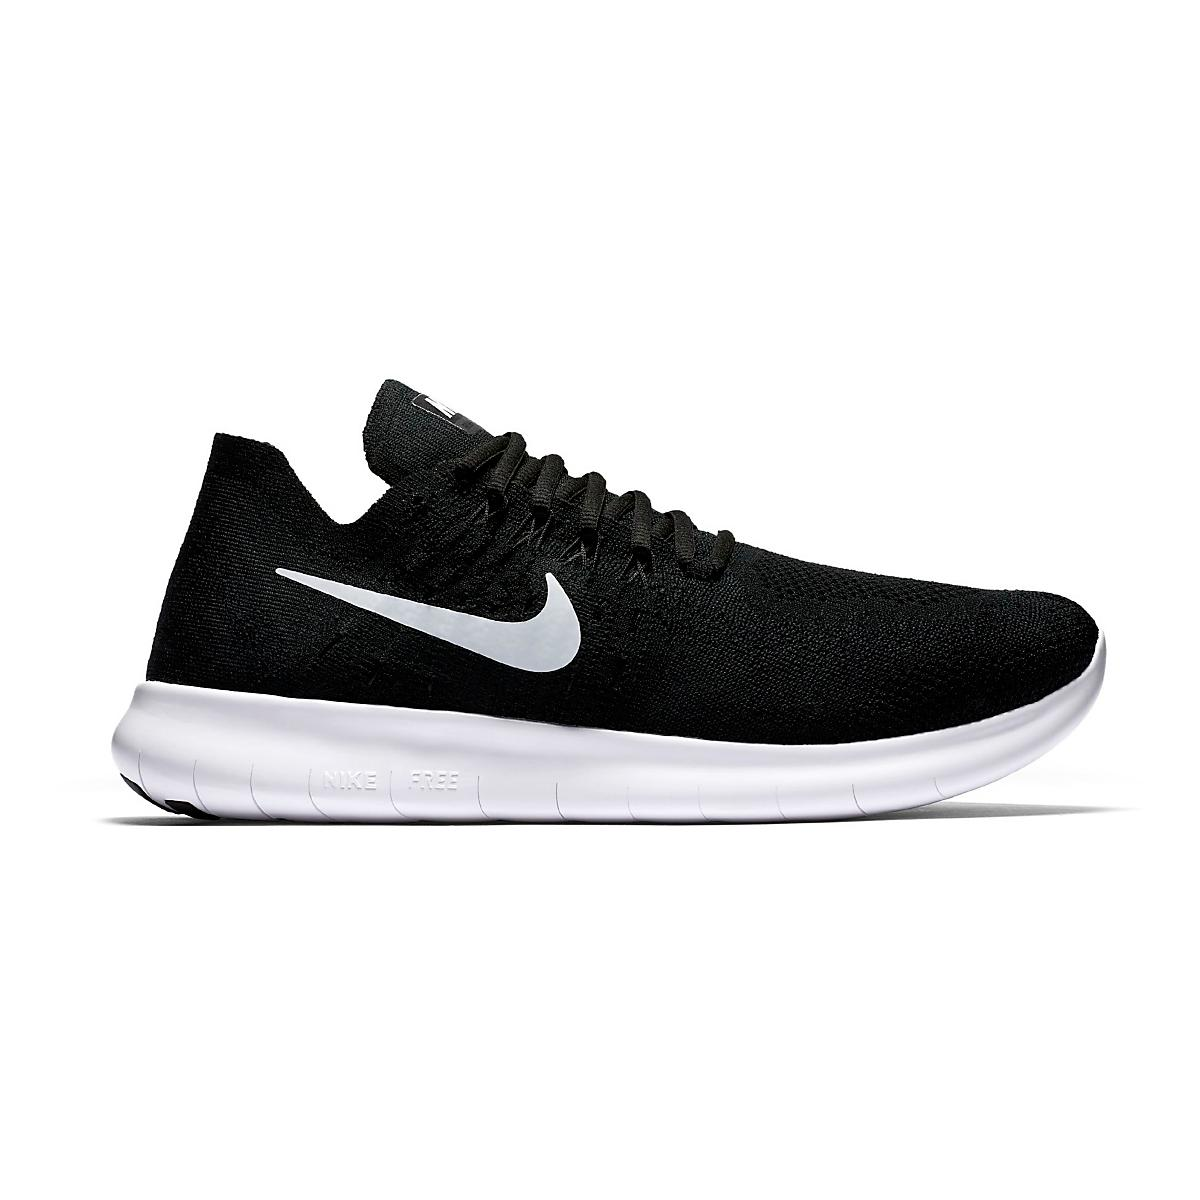 Nike Free Flyknit Sale Cheap Women's & Men's Nike Free RN